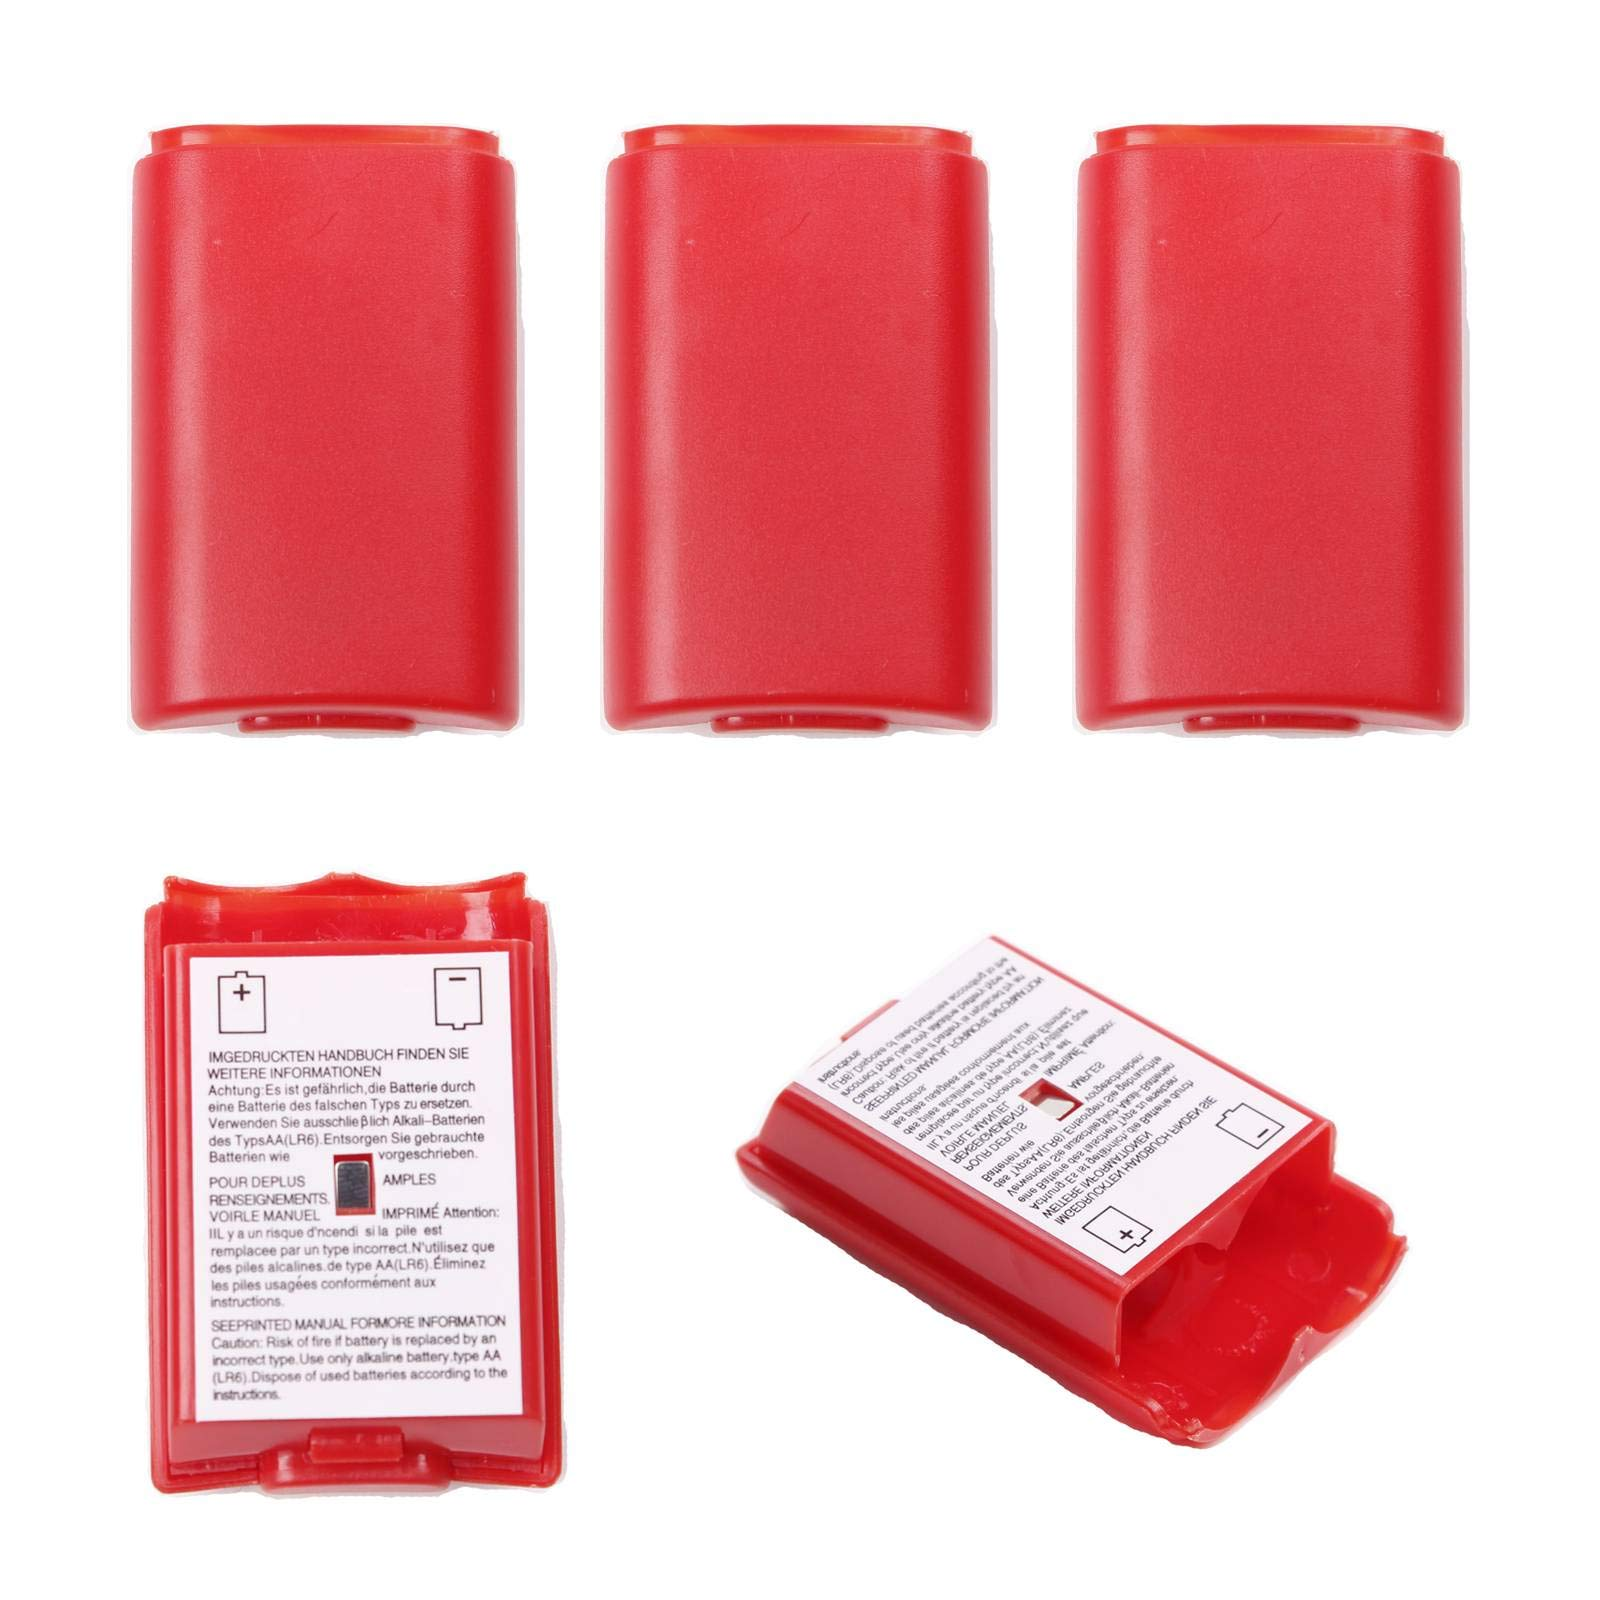 BIHRTC Pack of 5 Pcs Replacement AA Battery Case Battery Pack Cover Shell Case Kit for Xbox 360 Wireless Controller (Red)